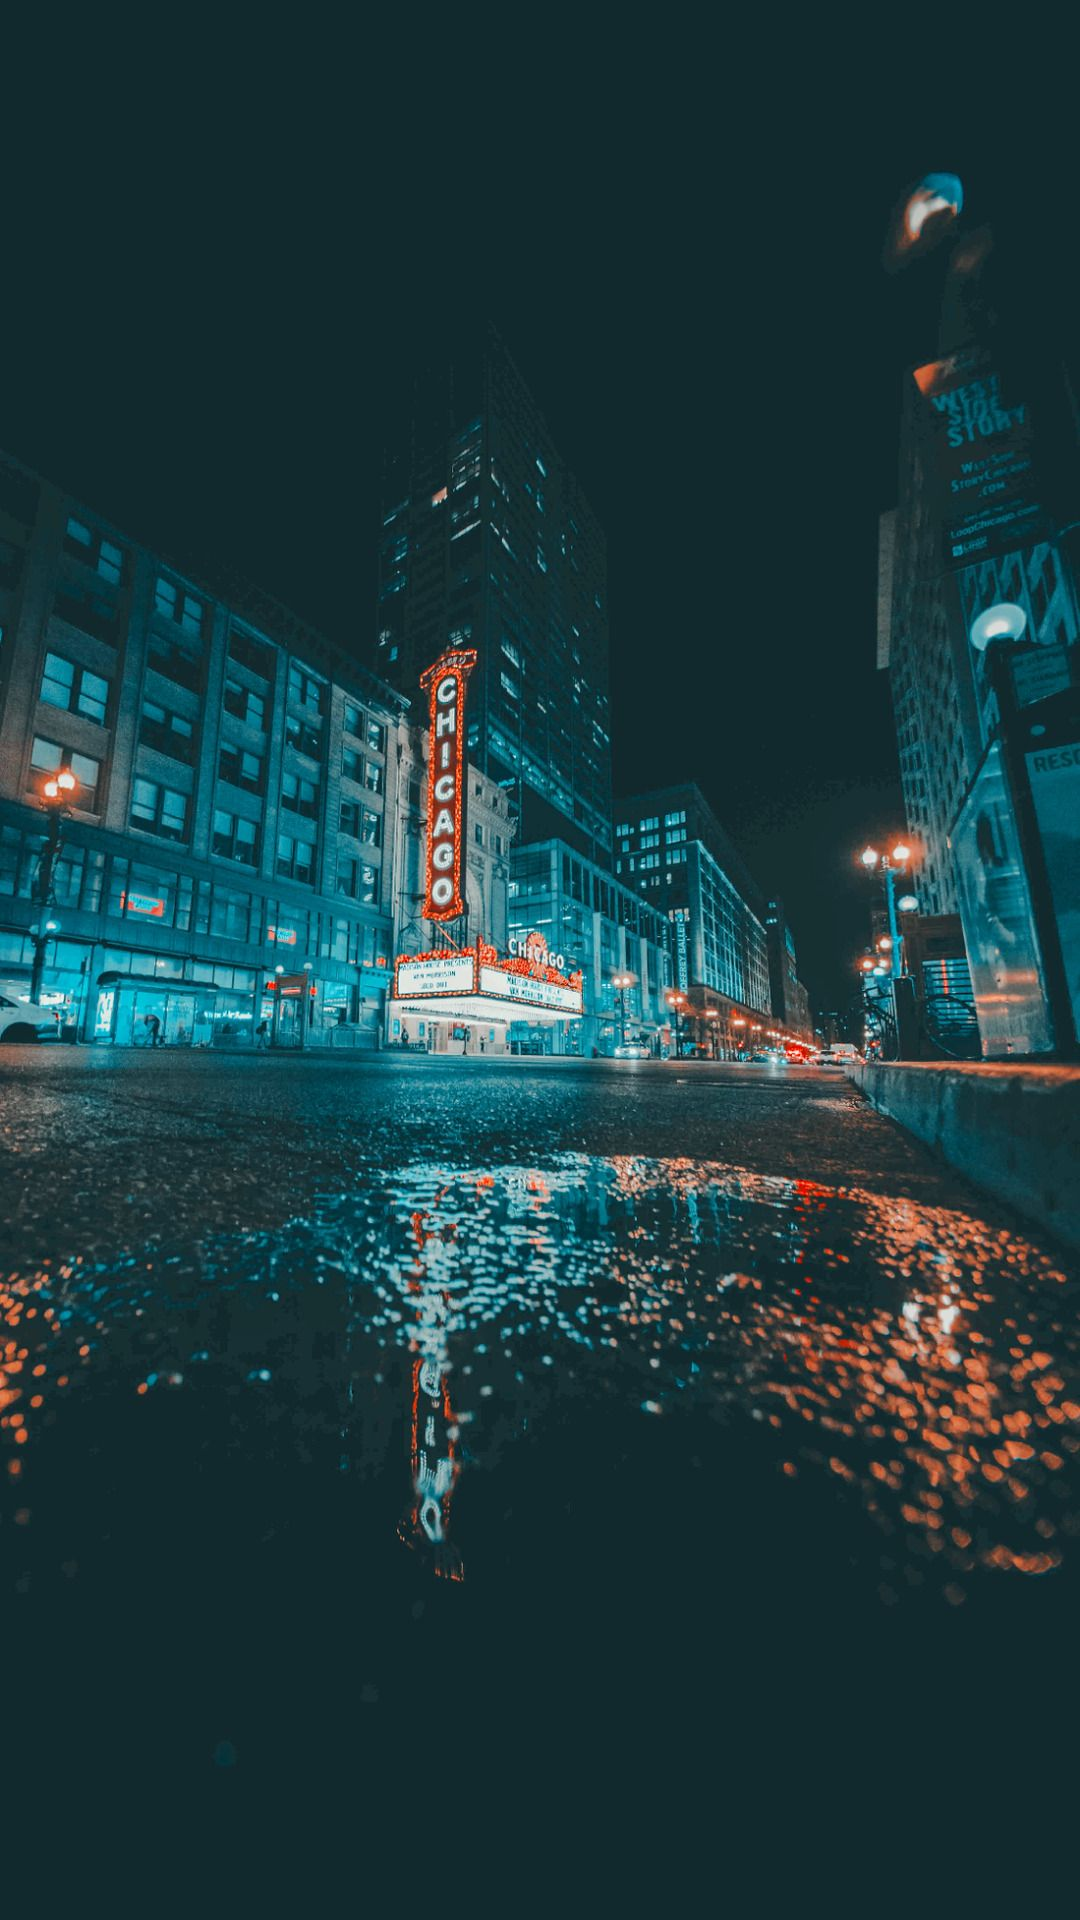 Aesthetic City Backgrounds posted by Zoey Cunningham